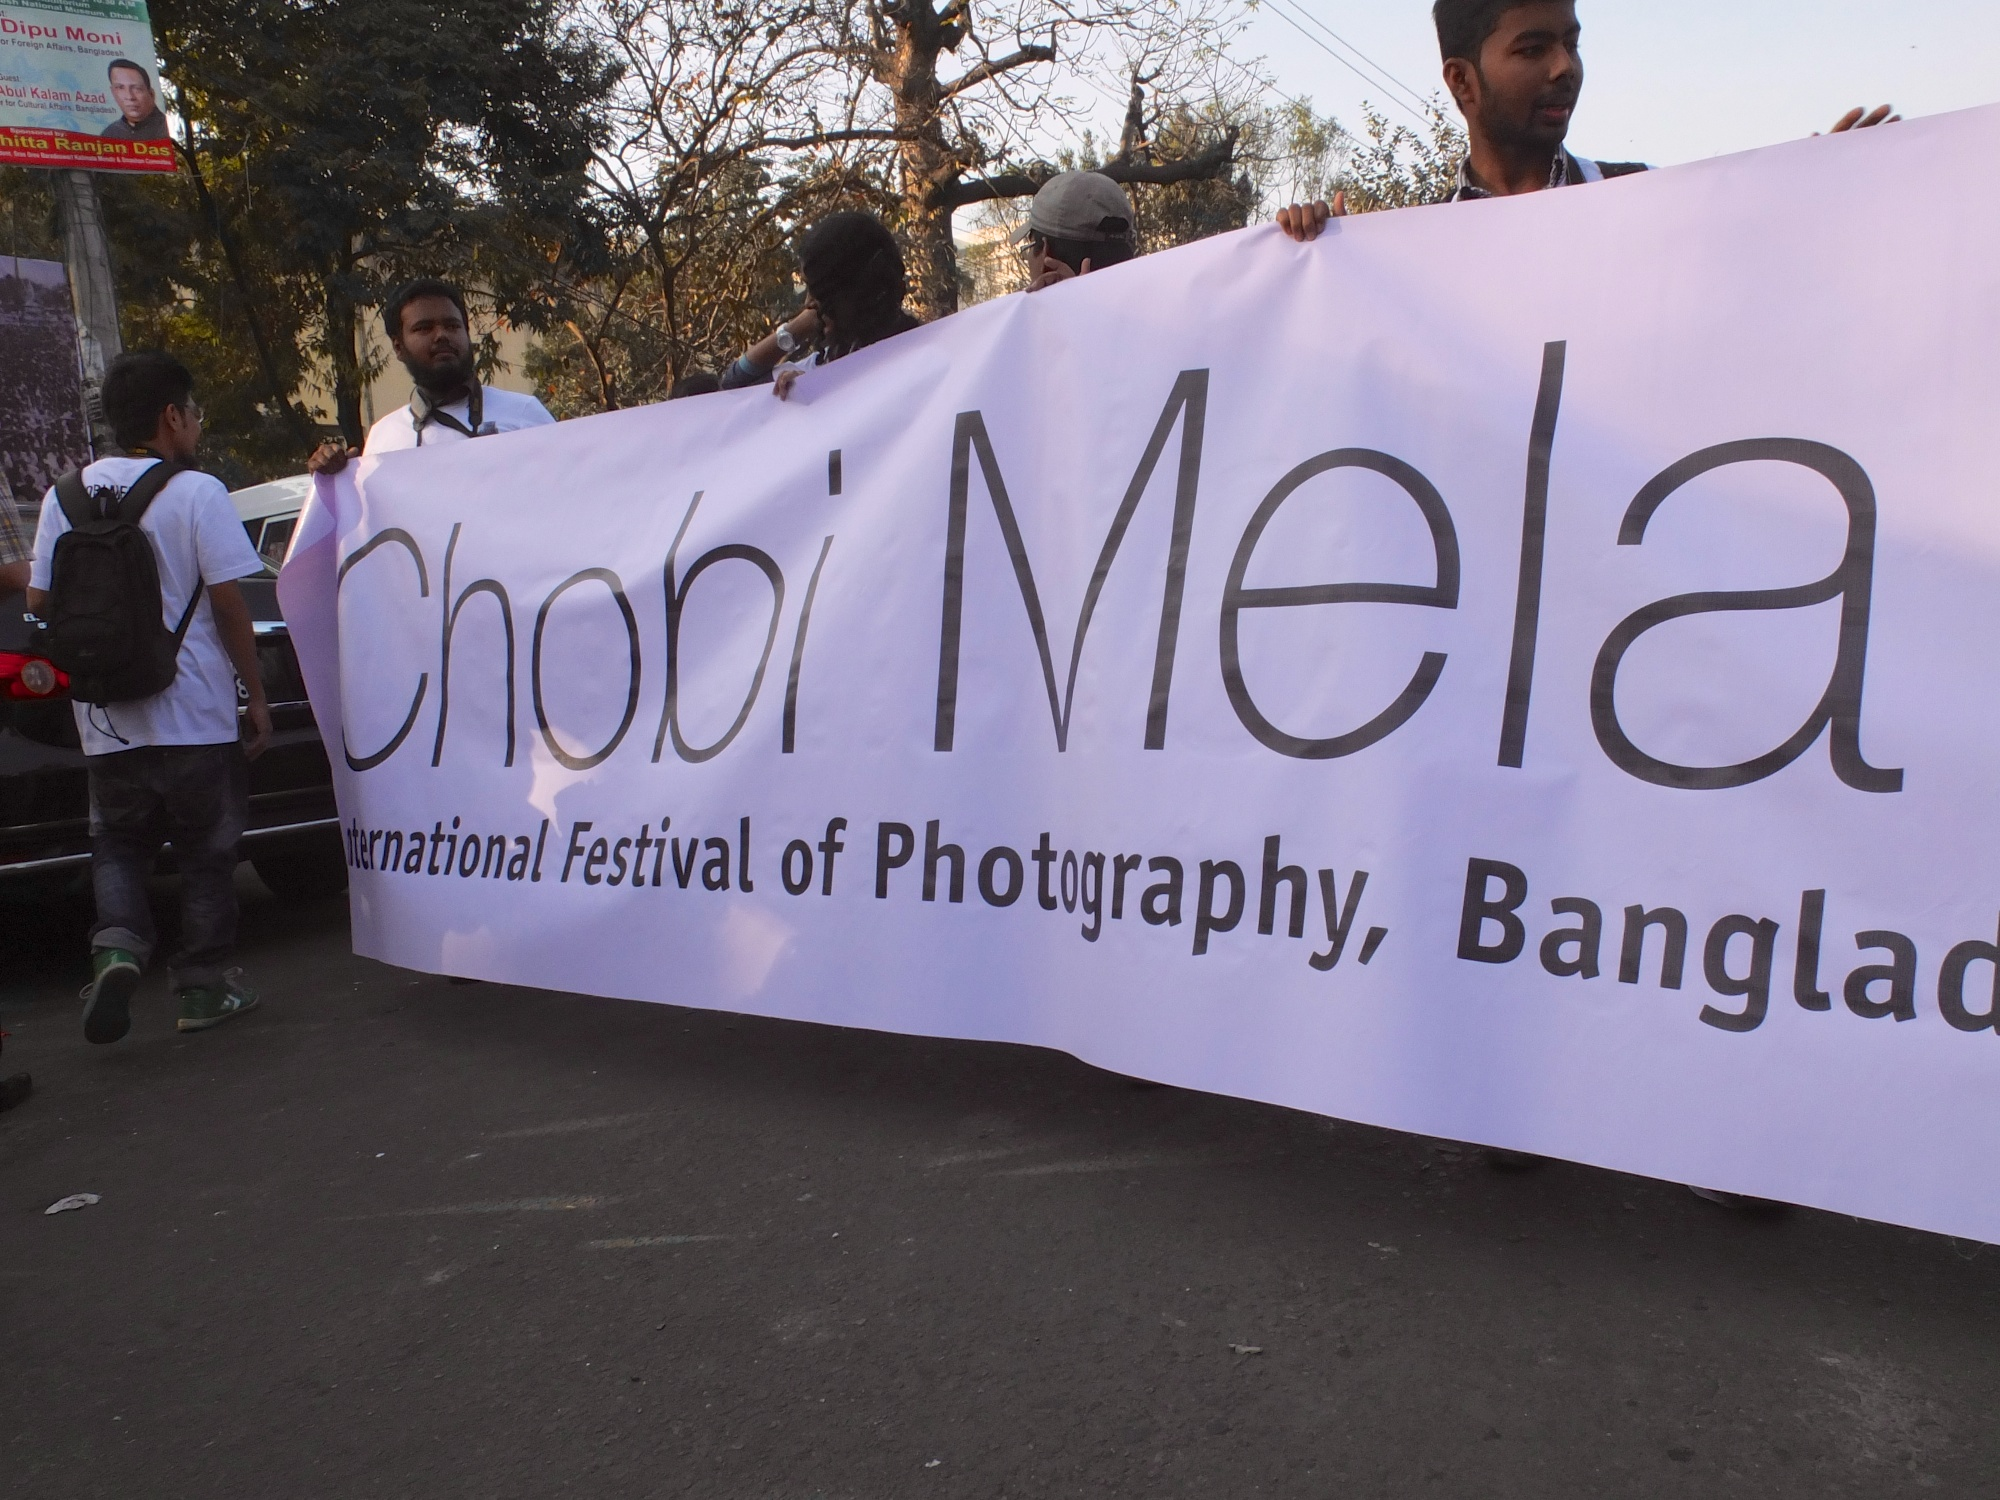 The opening rally for Chobi Mela VII